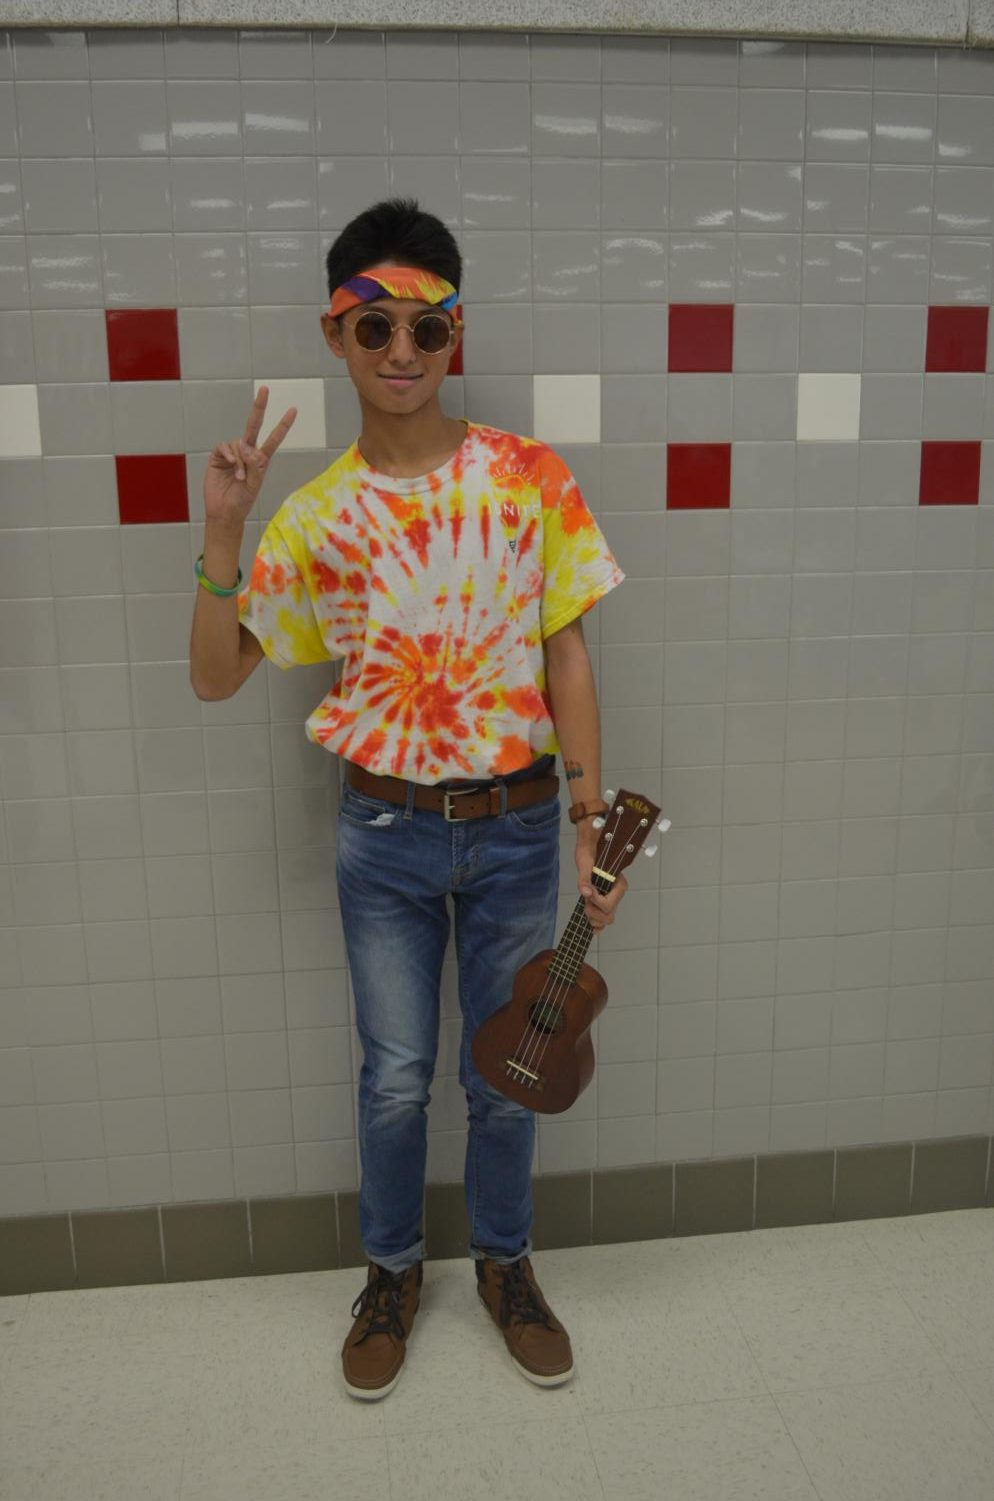 Freshman+Jimmy+Le+dresses+up+as+a+hippie.